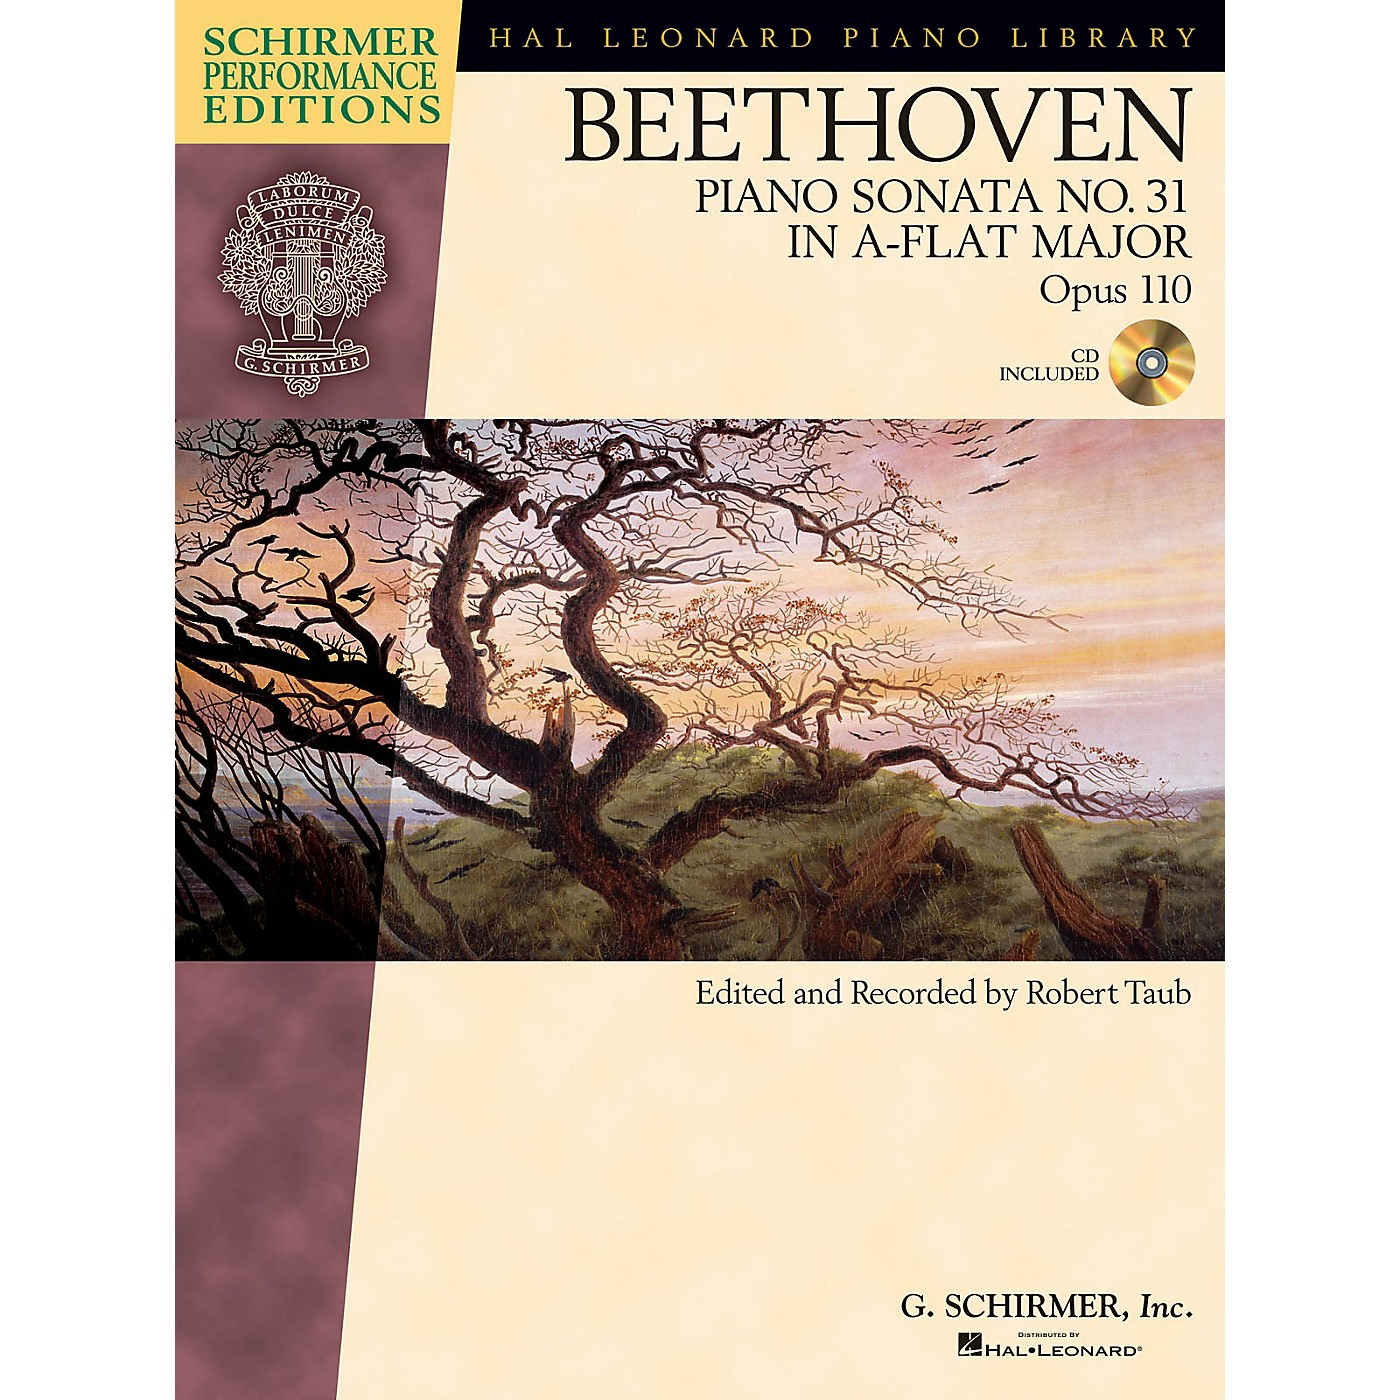 G. Schirmer Beethoven Sonata No 31 in A-flat Maj Op 110 Schirmer Performance Edition BK/CD Edited by Robert Taub thumbnail